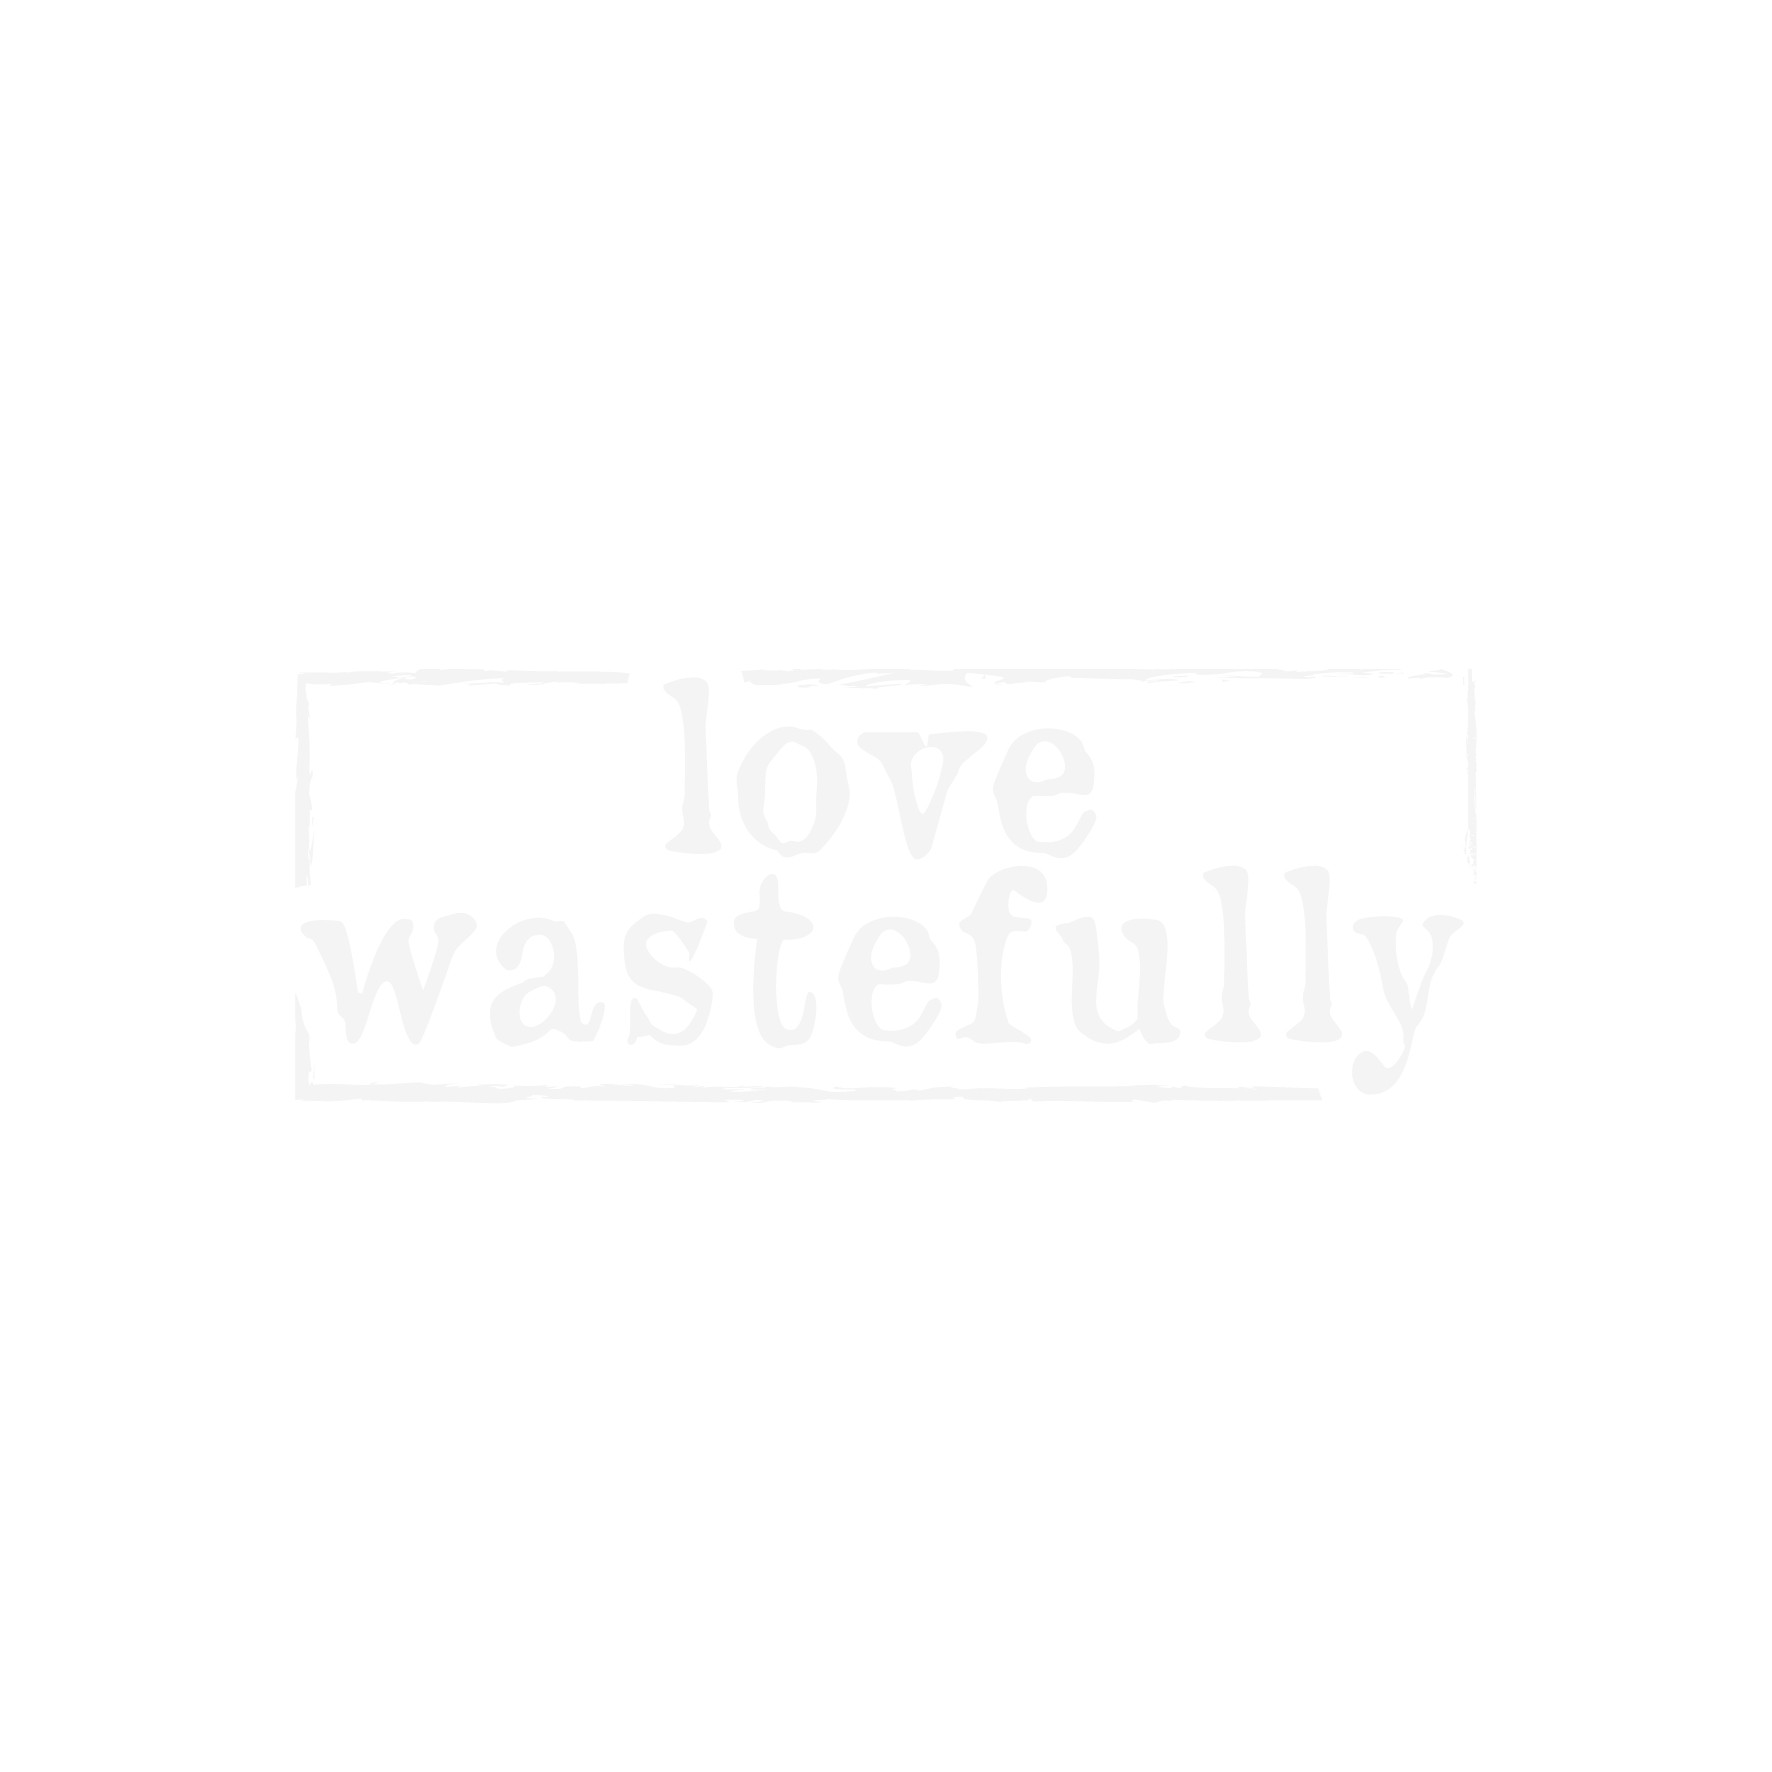 love wastefully.